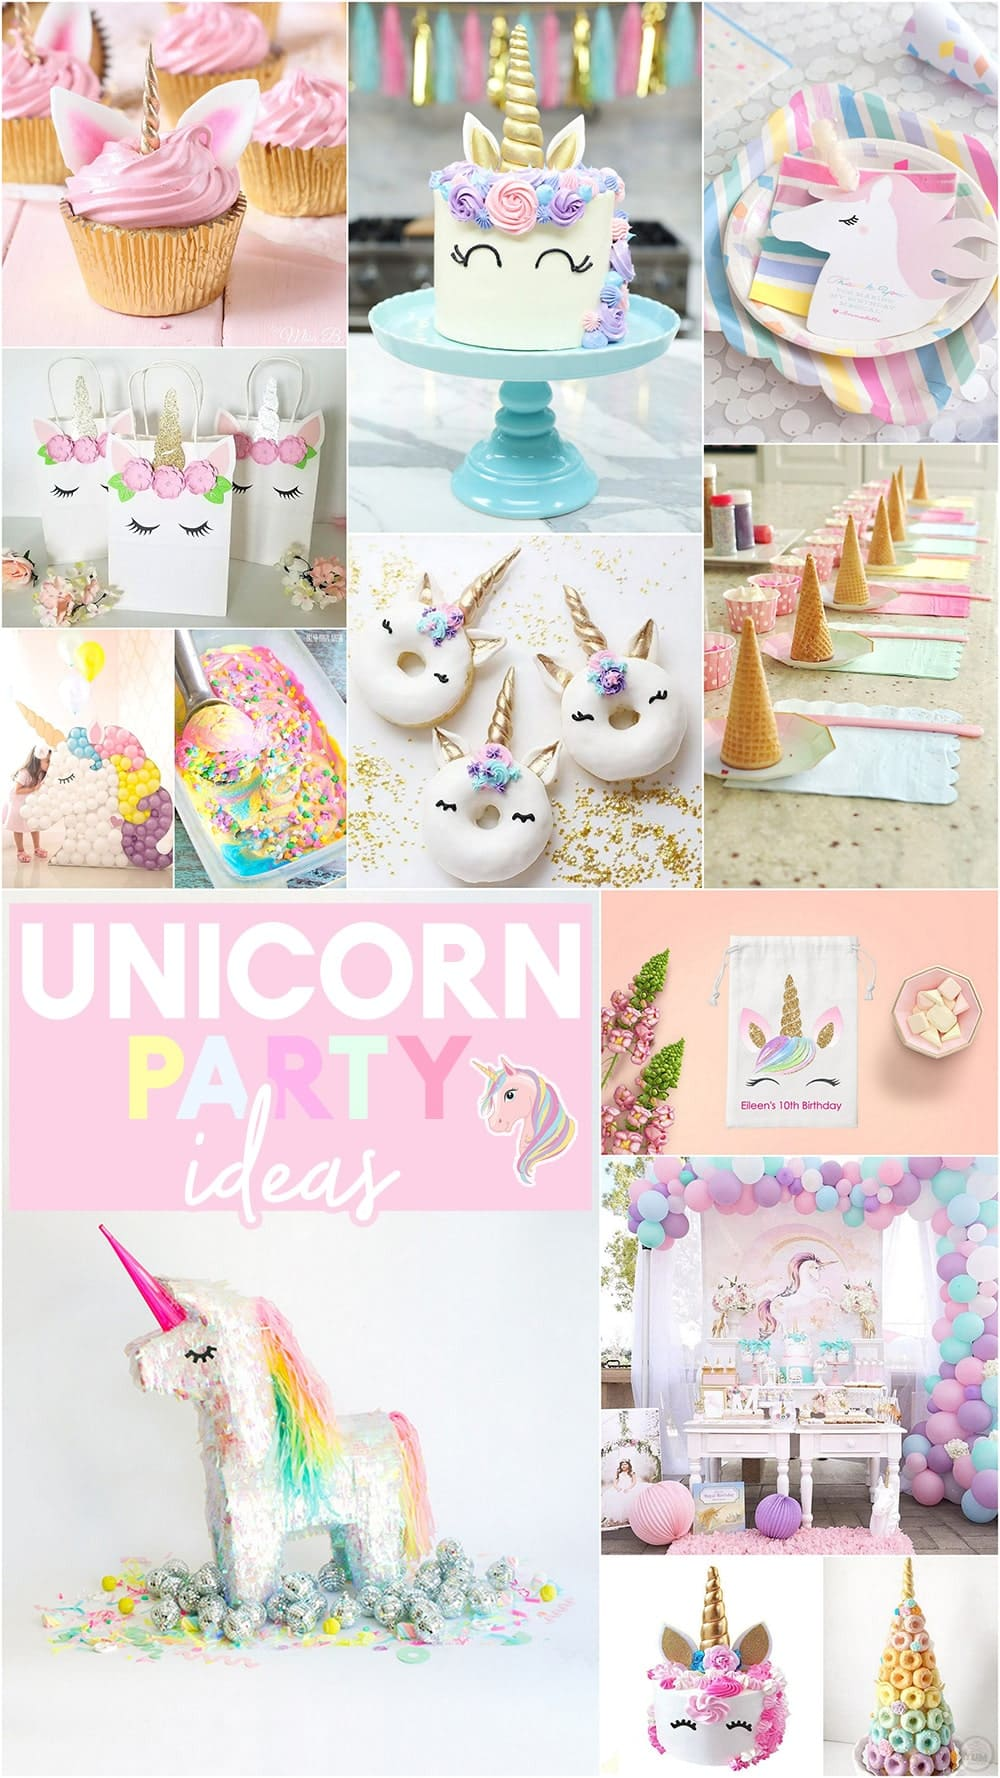 27 Magical Unicorn Party Ideas